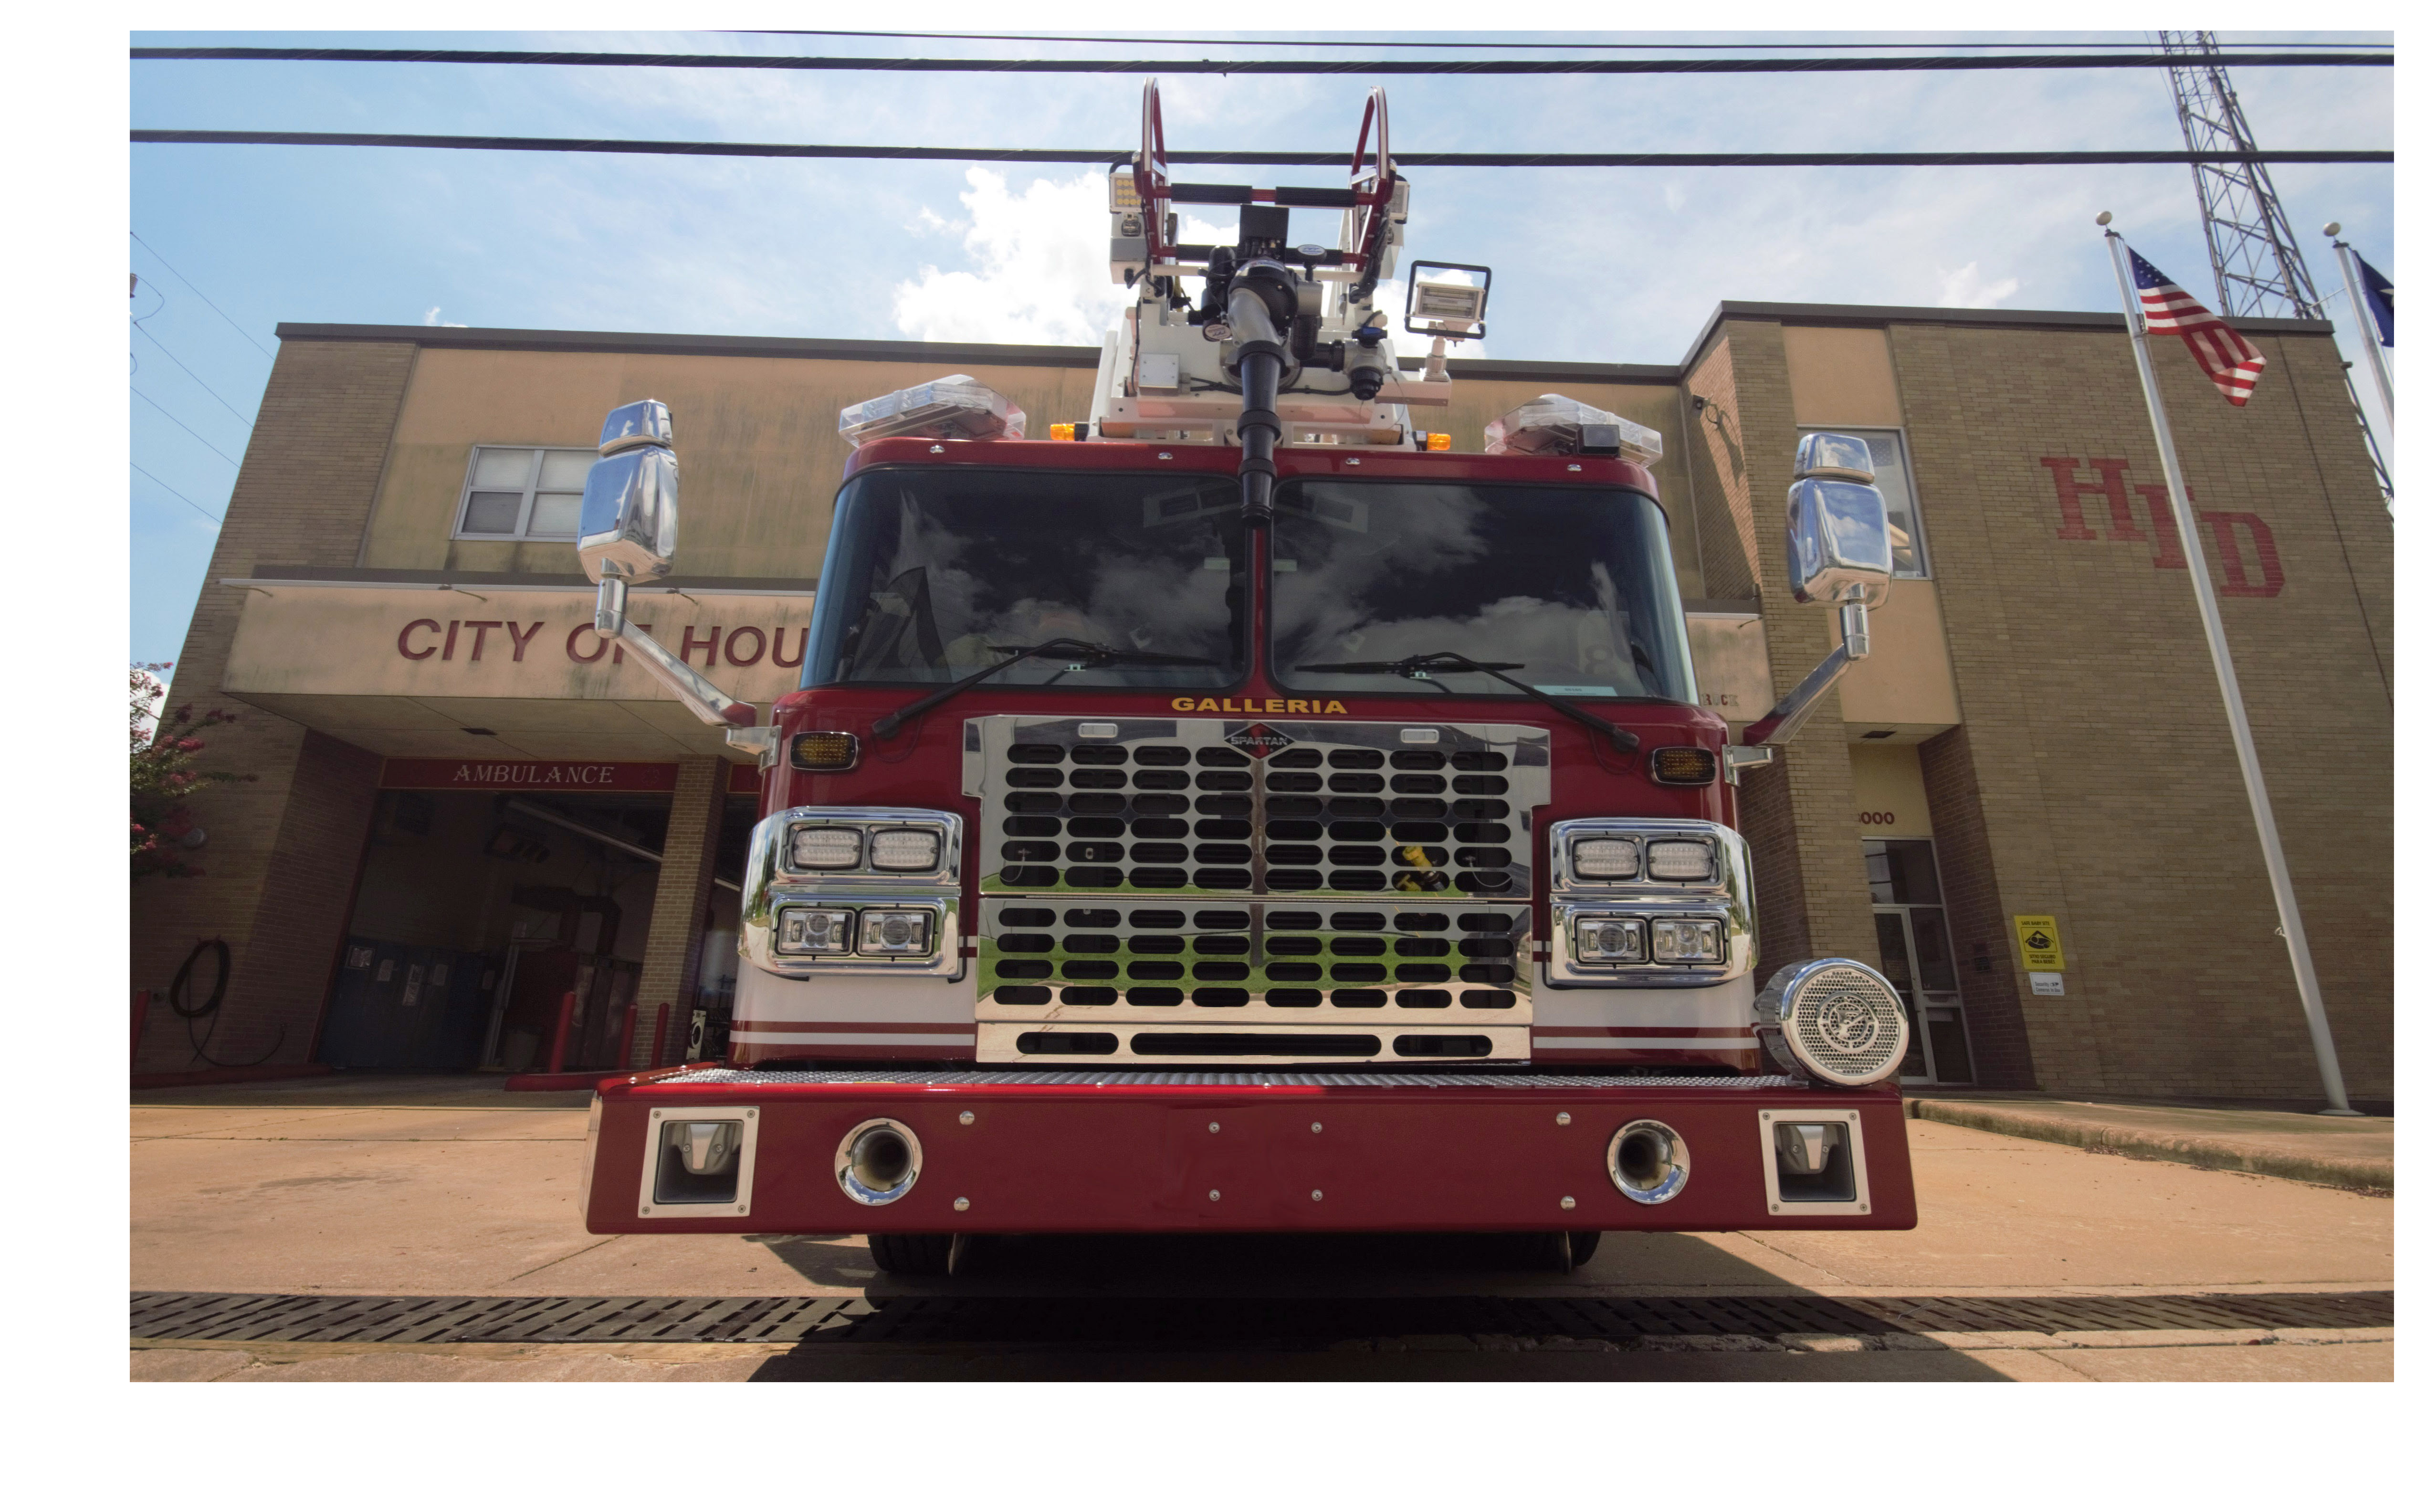 HFD Ladder 28 front view in front of fire station